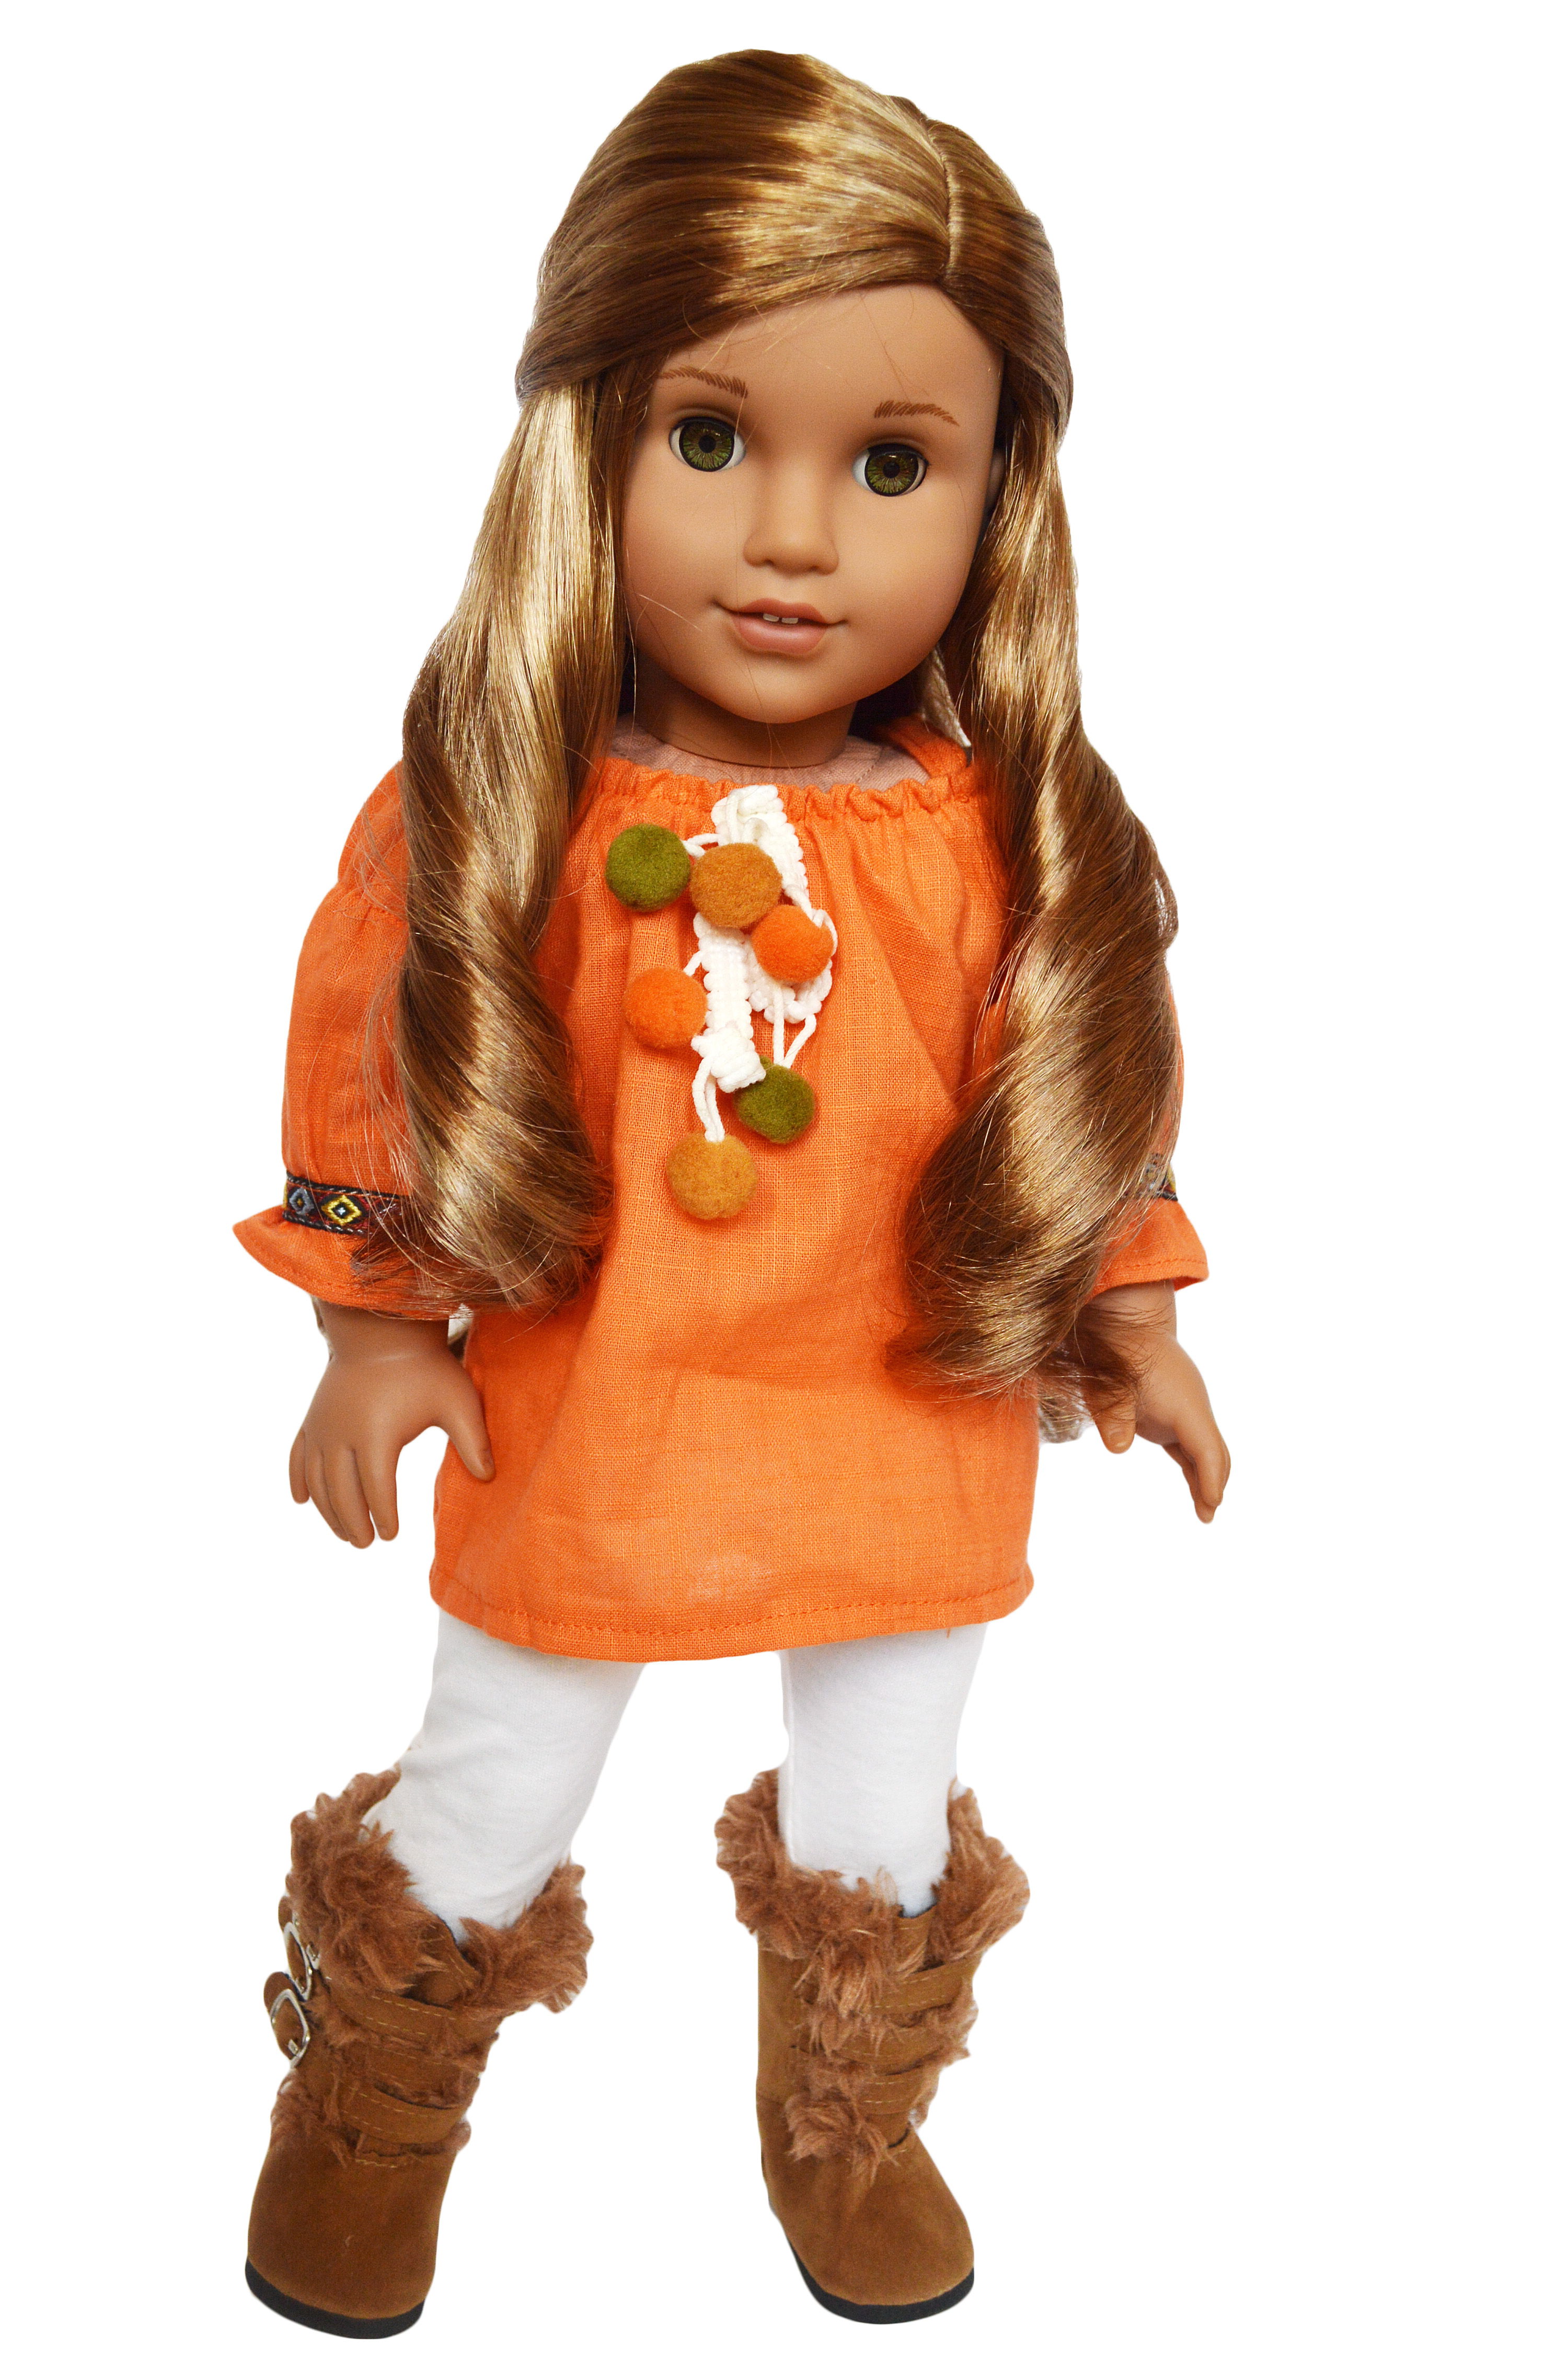 c8a395a379d3 My Brittany's Pumpkin Spice Outfit for American Girl Dolls- 18 Inch Doll  Clothes- Fits American Girl Dolls and My Life as Dolls - Walmart.com